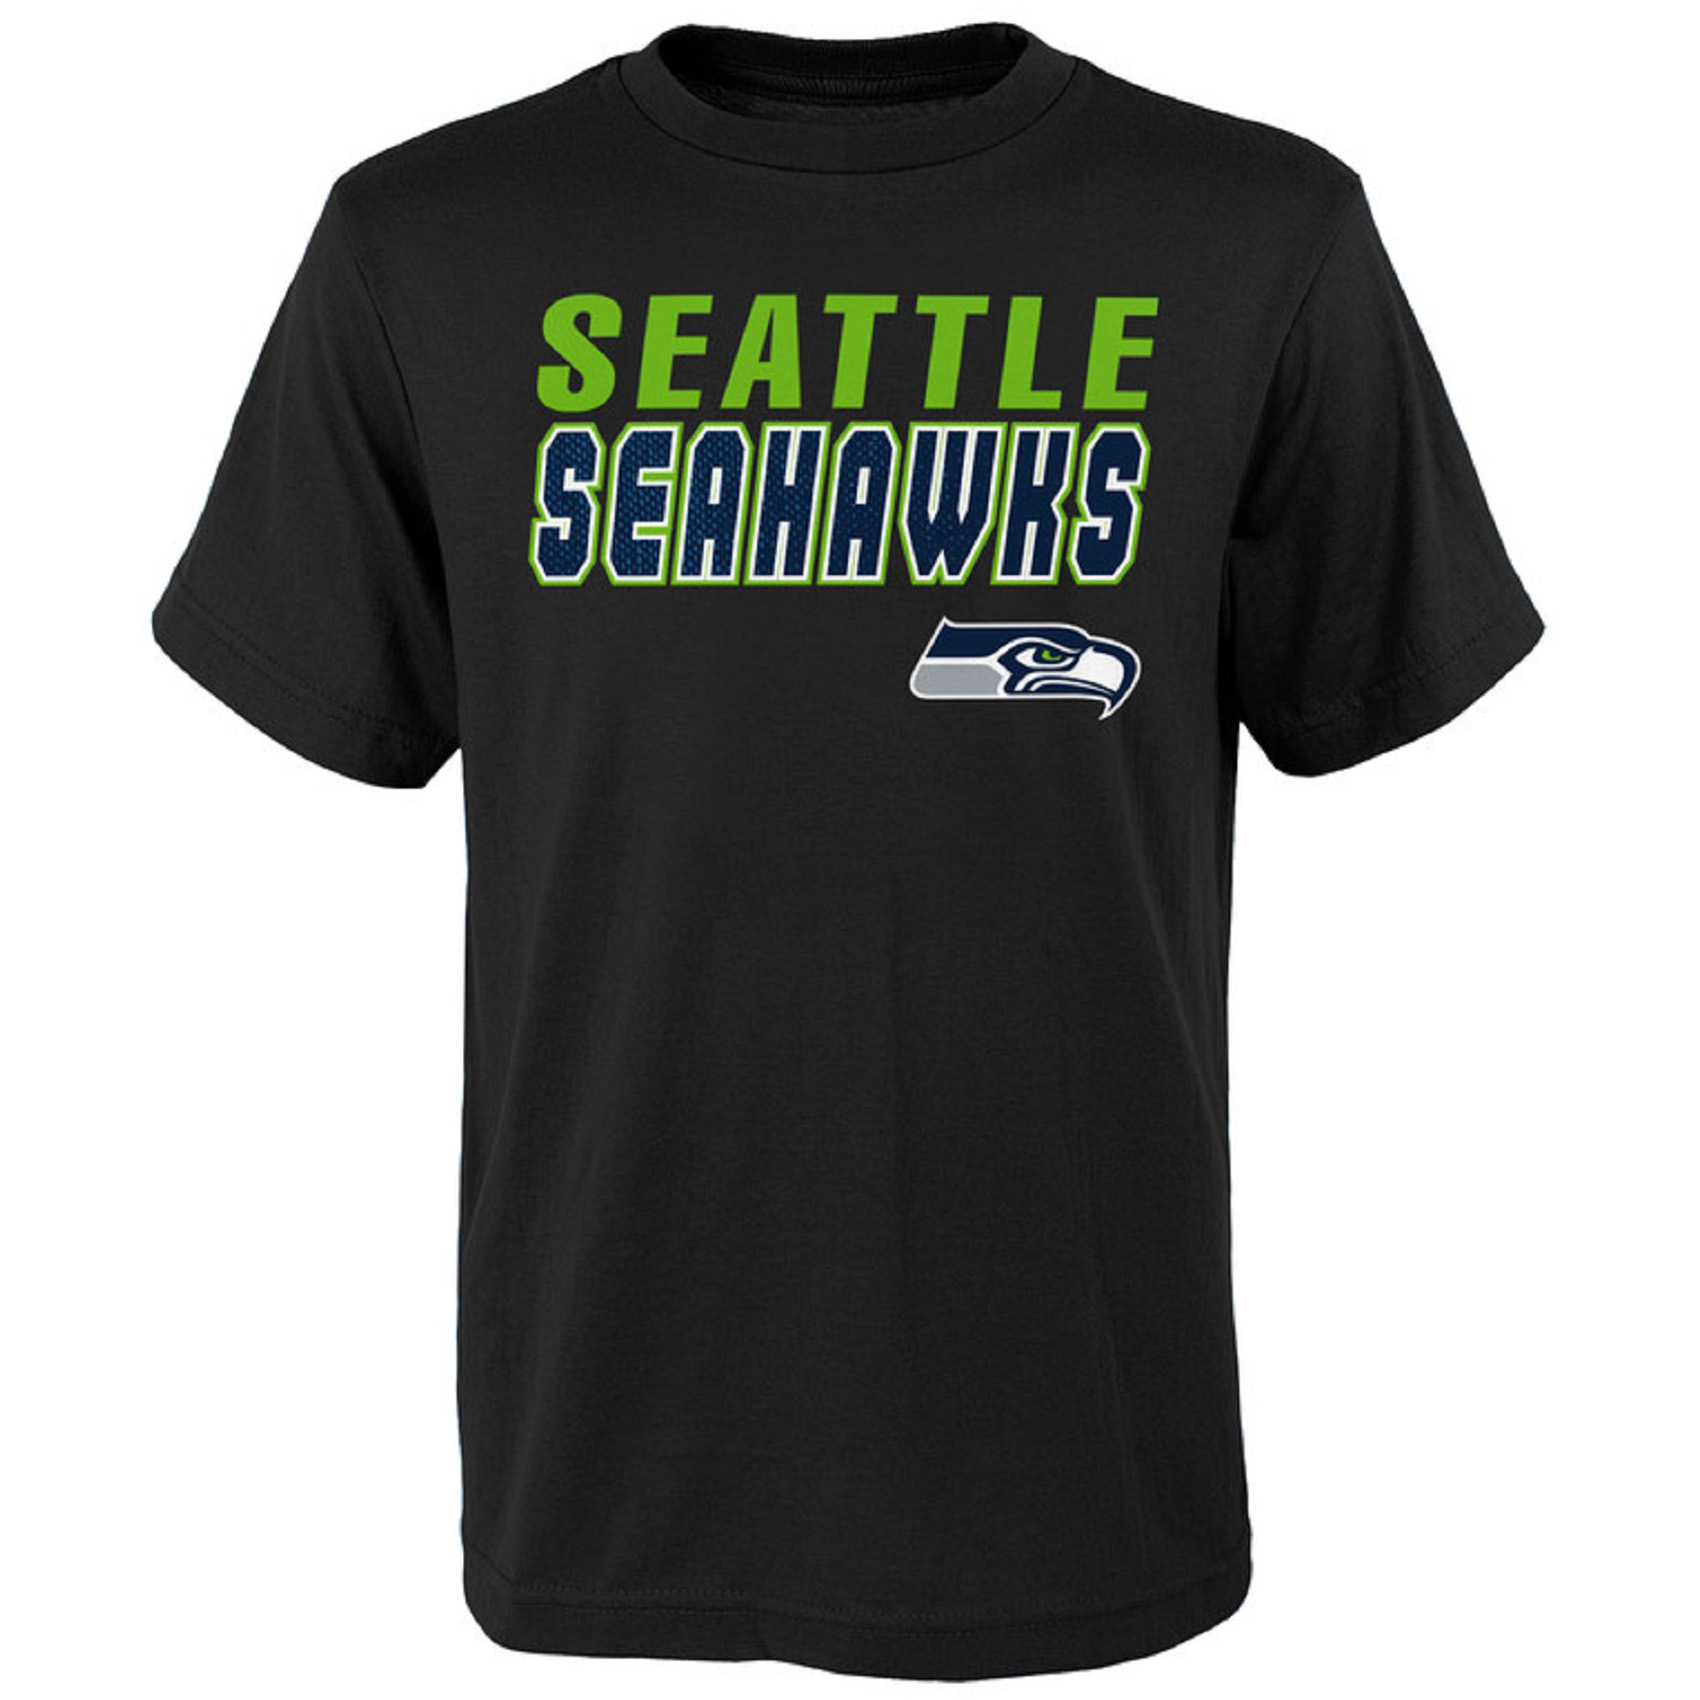 Youth Black Seattle Seahawks Outline T-Shirt